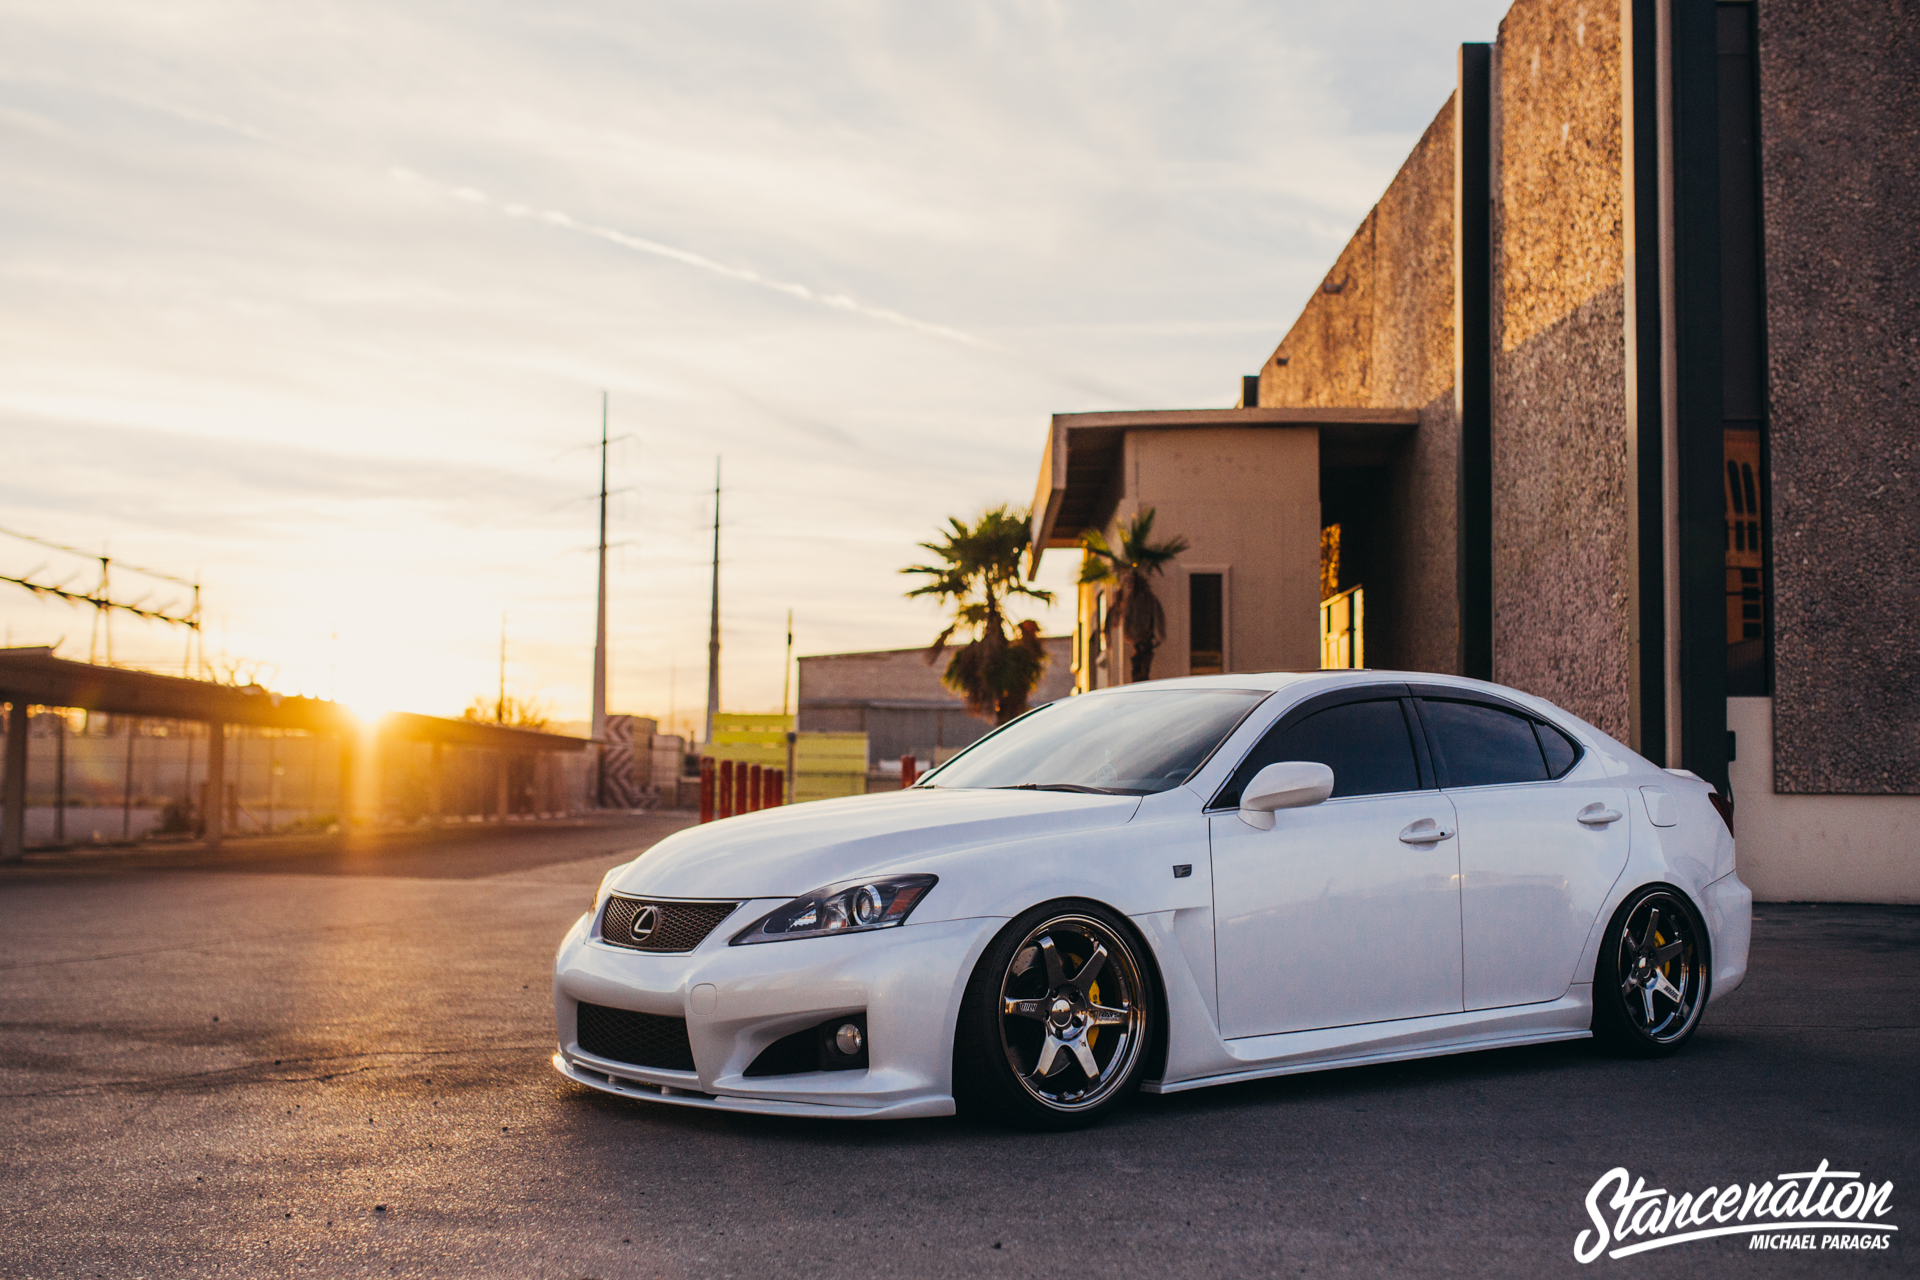 Lexus Isf 2015 >> Sin City Coastin' // Lance Calitri's Lexus IS-F | StanceNation™ // Form > Function